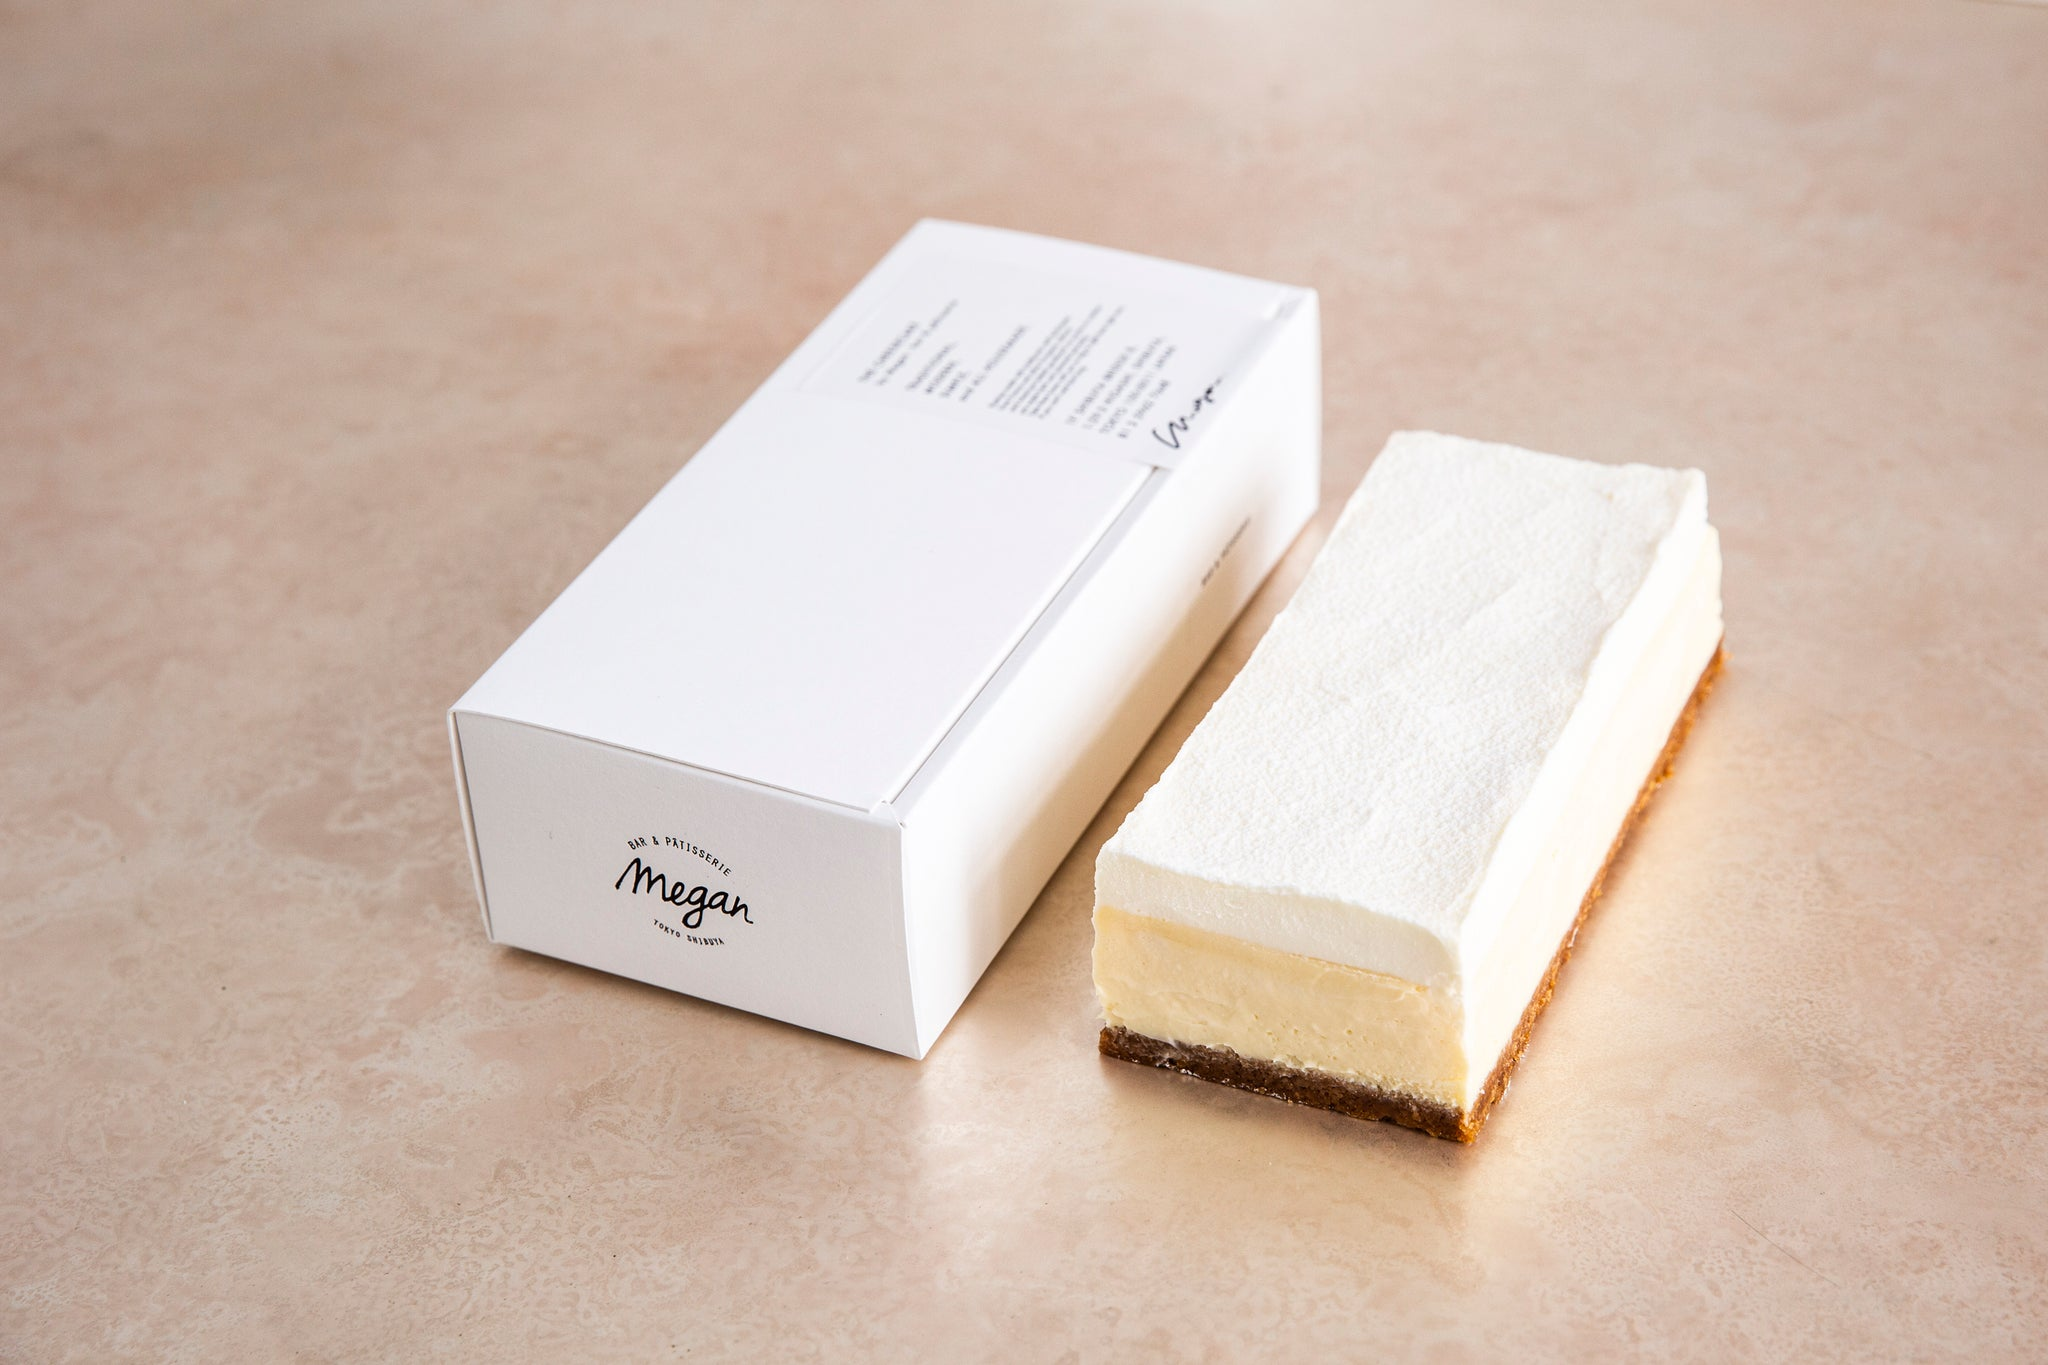 【5/8販売分】THE CHEESECAKE by Megan - bar & patisserie